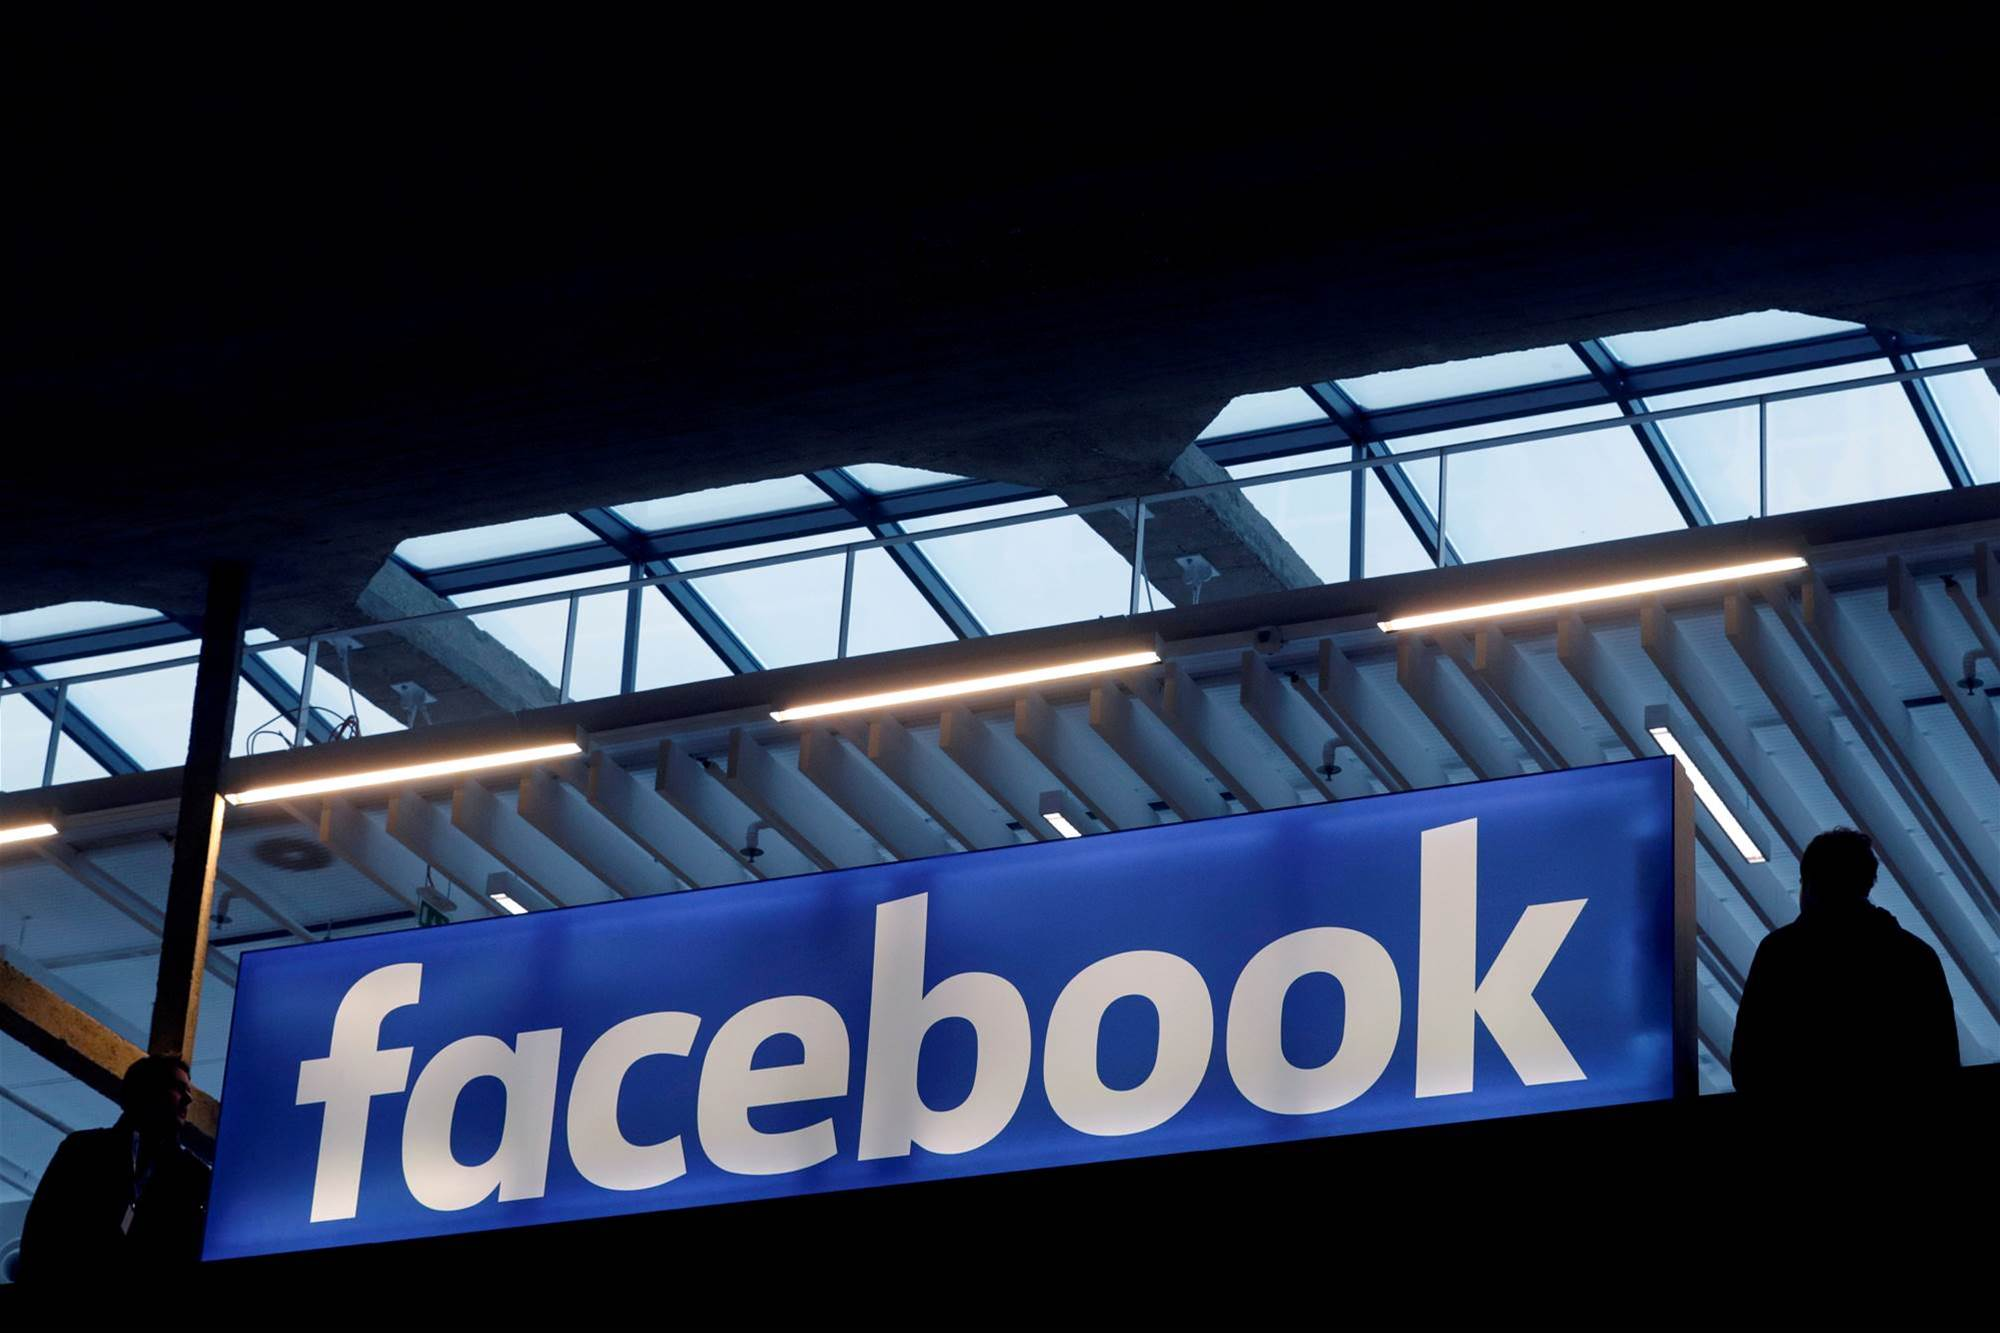 Facebook loses US$150 billion in market value over privacy concerns